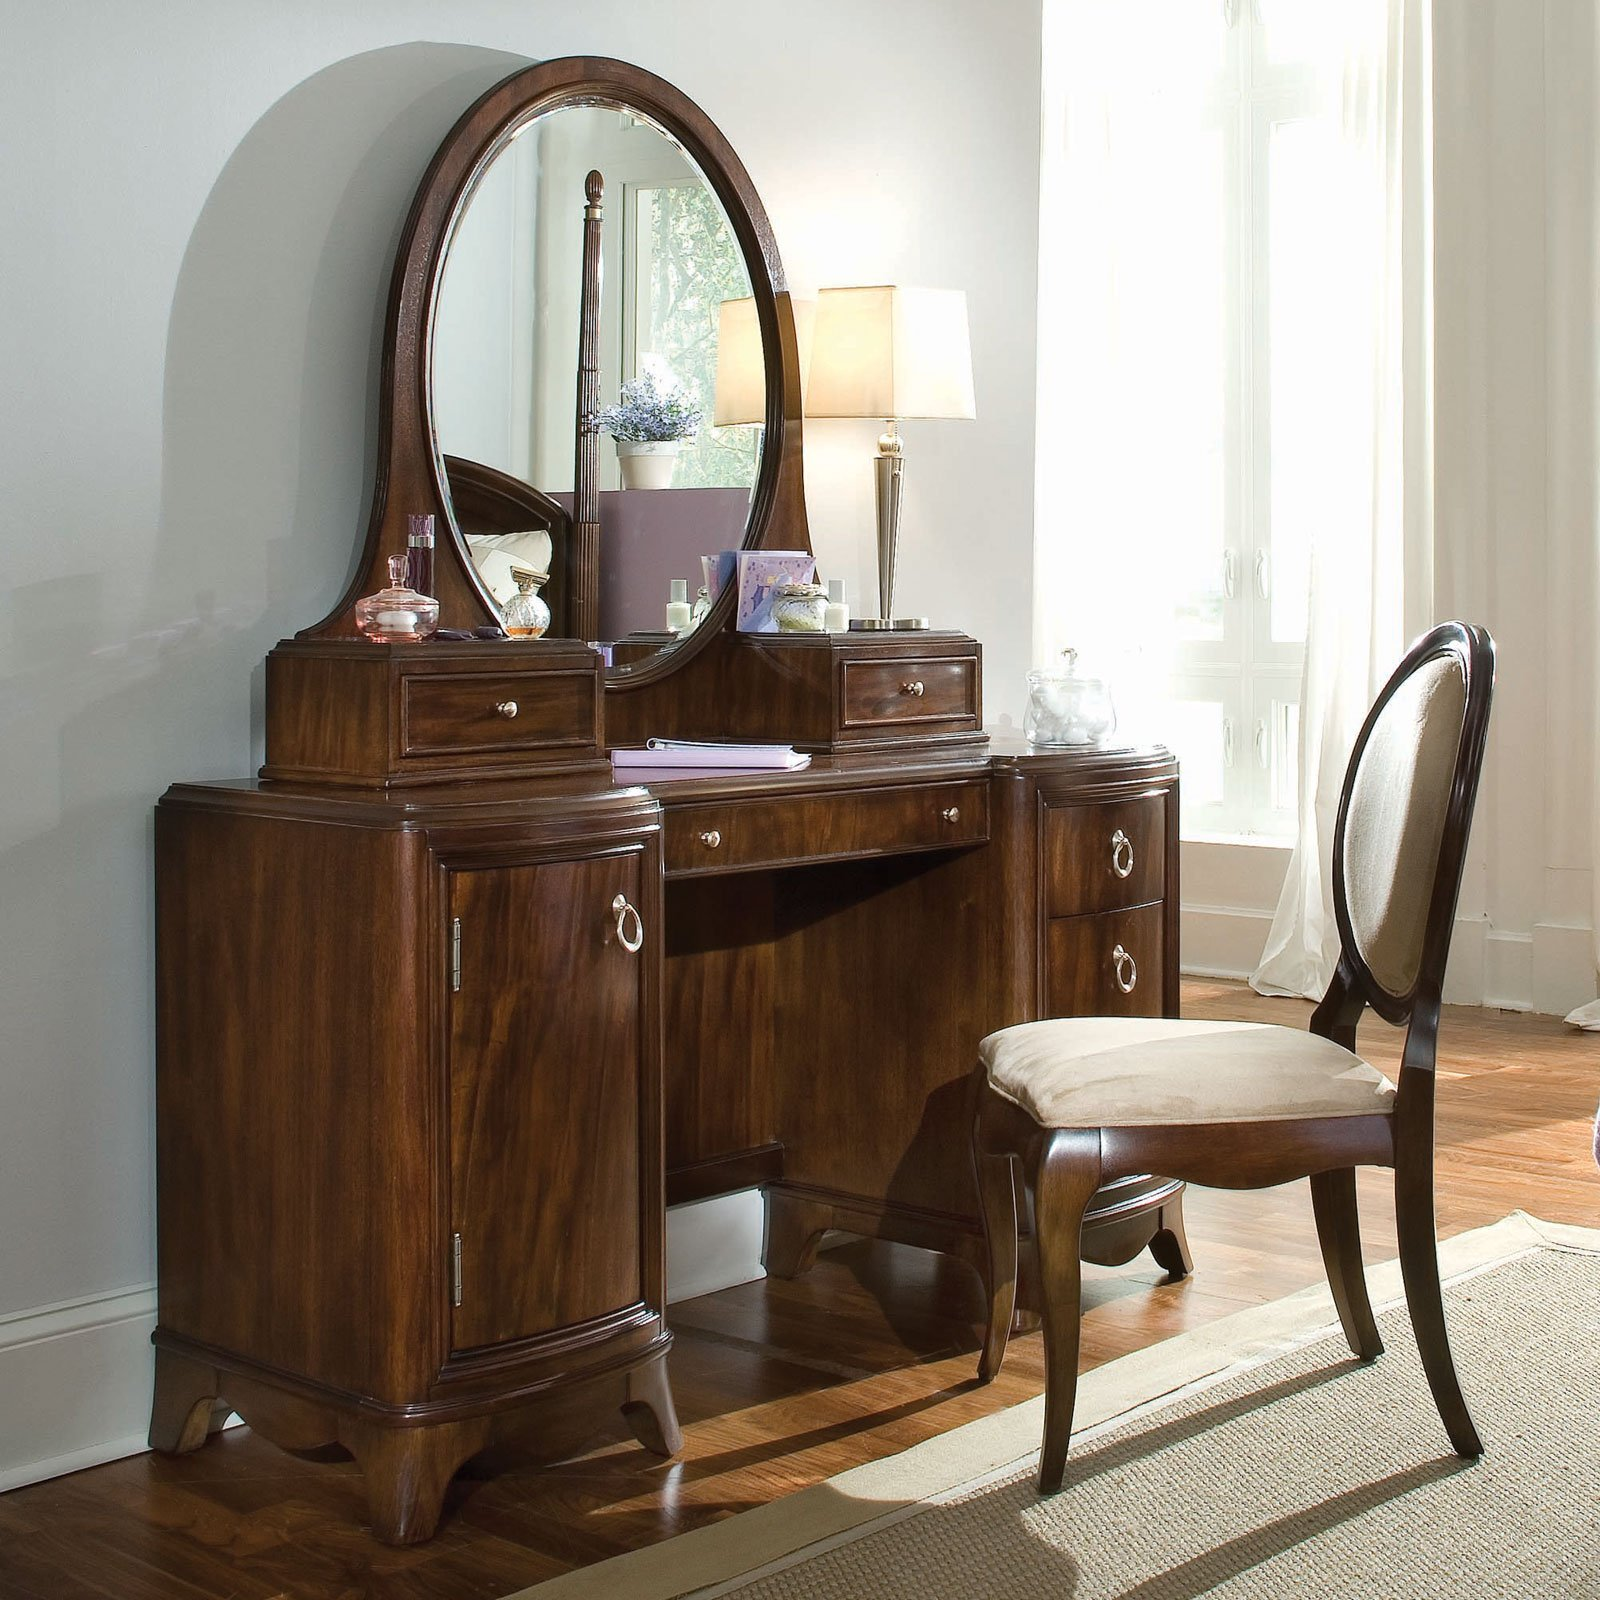 Small Bathroom Ideas: Bedroom Vanities With Lights